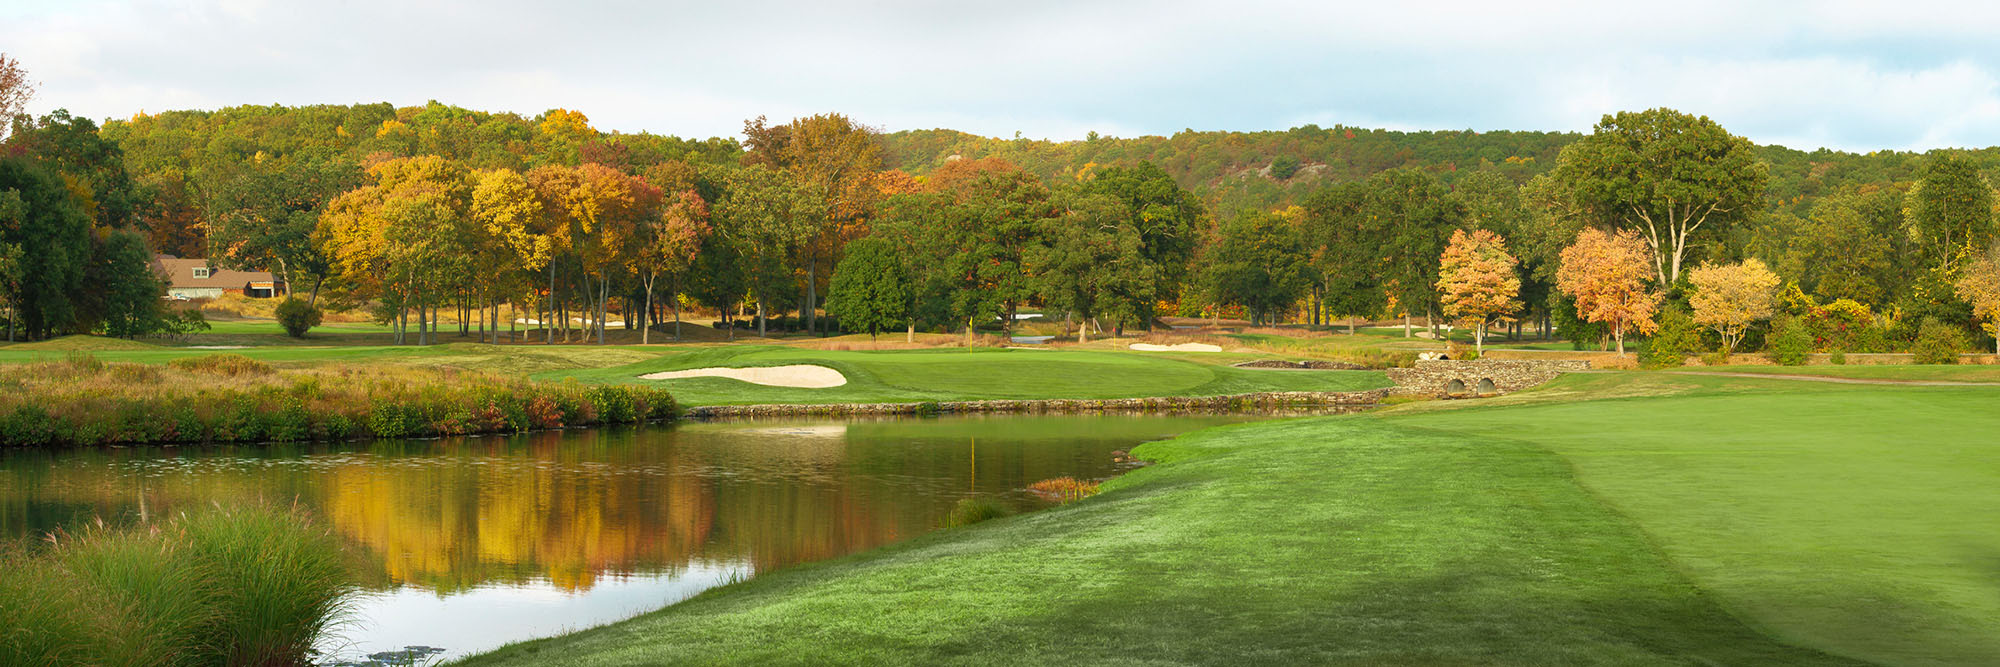 Golf Course Image - The Tuxedo Club No. 5